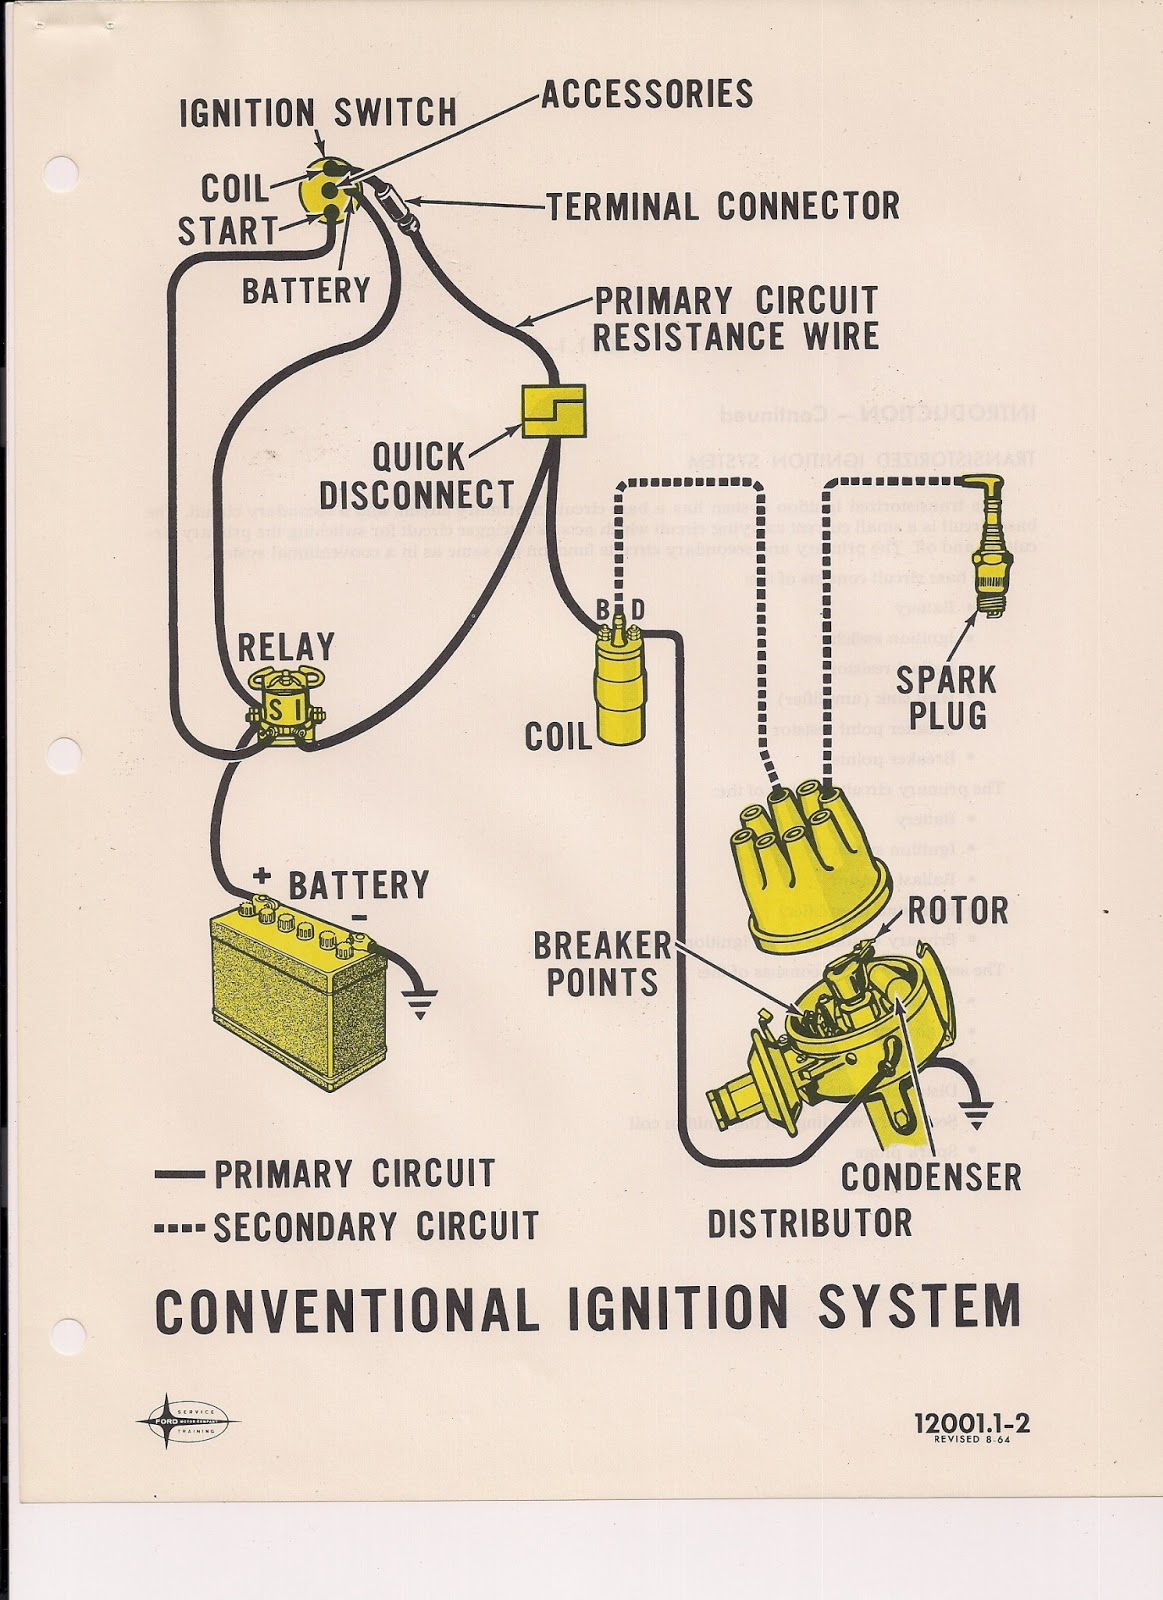 Ignition+1 the care and feeding of ponies mustang ignition system 1965 and 1966 66 mustang engine wiring diagram free at soozxer.org